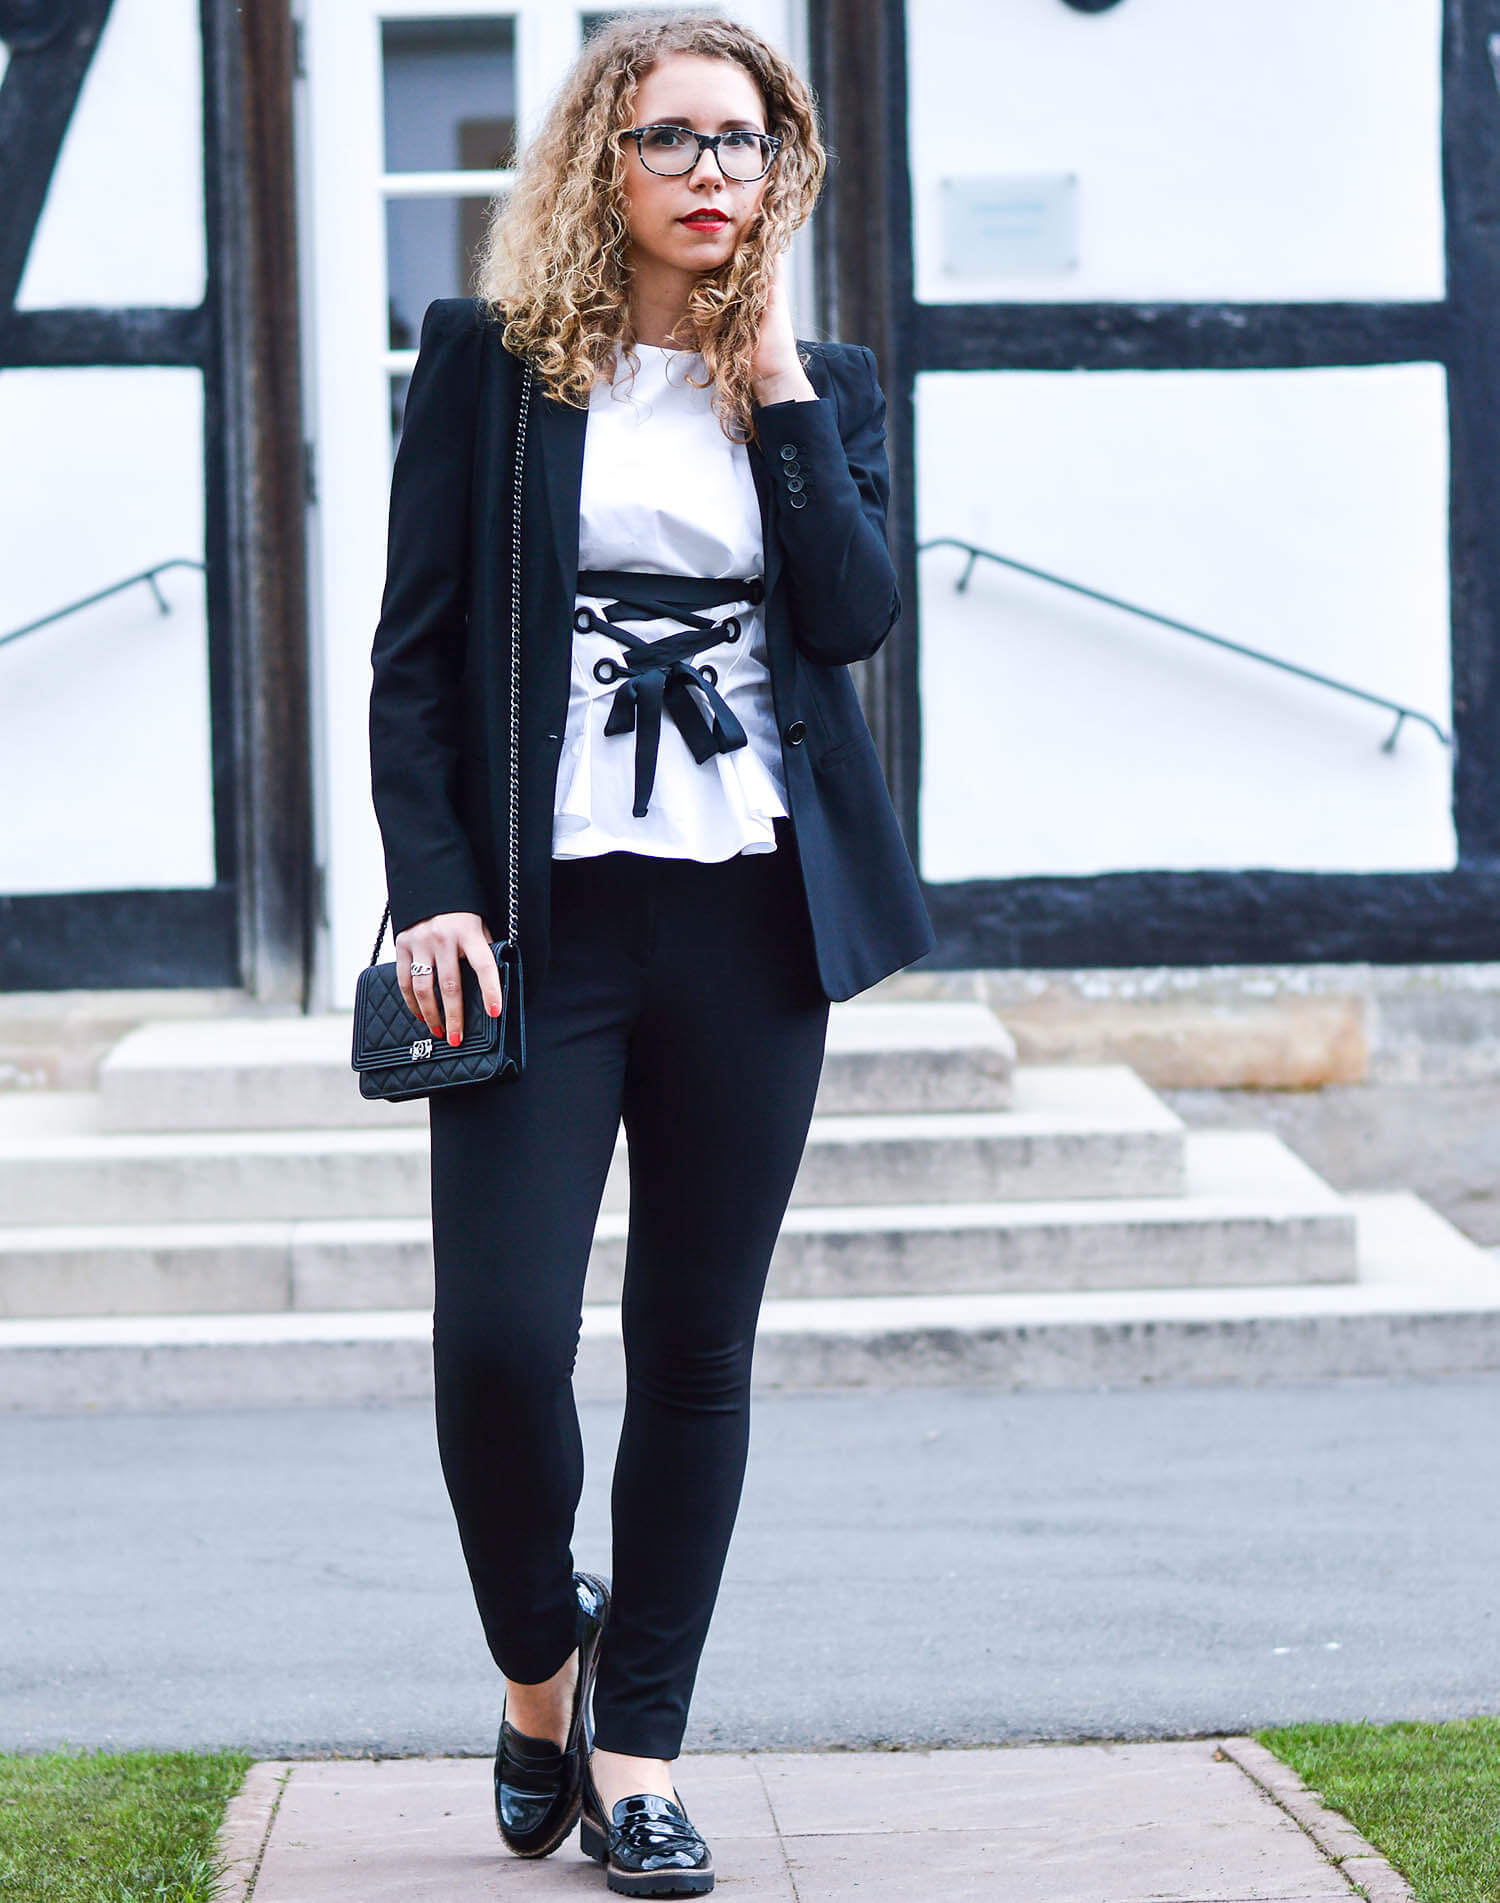 kationette-fashionlog-nrw-Outfit-Black-White-Zara-Lacing-Top-Blazer-Slim-Pants-Chanel-Bag